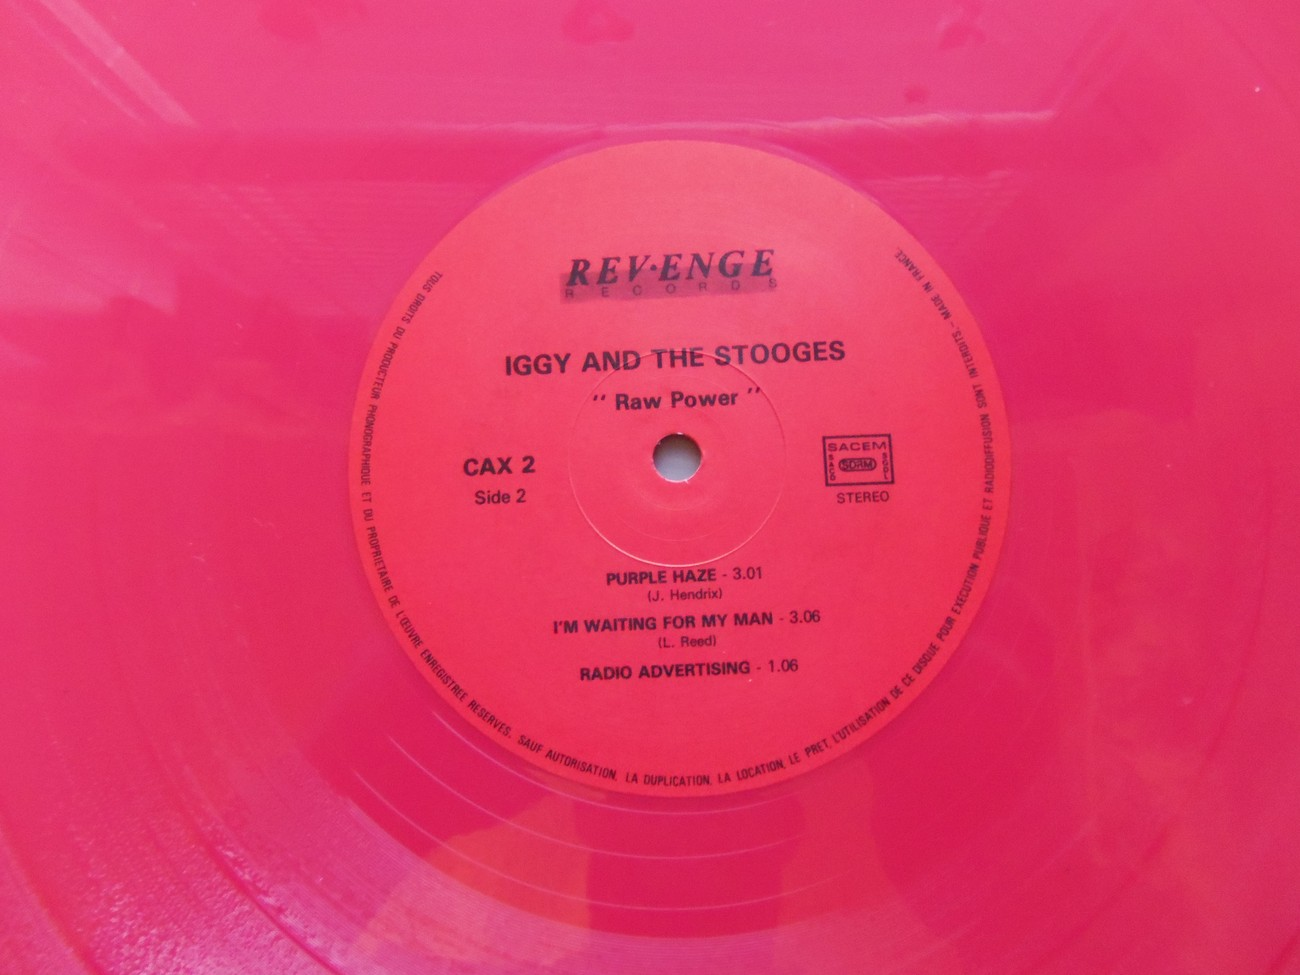 Iggy and The Stooges Raw Power Revenge Colored Vinyl 1988 Limited Edition Ep